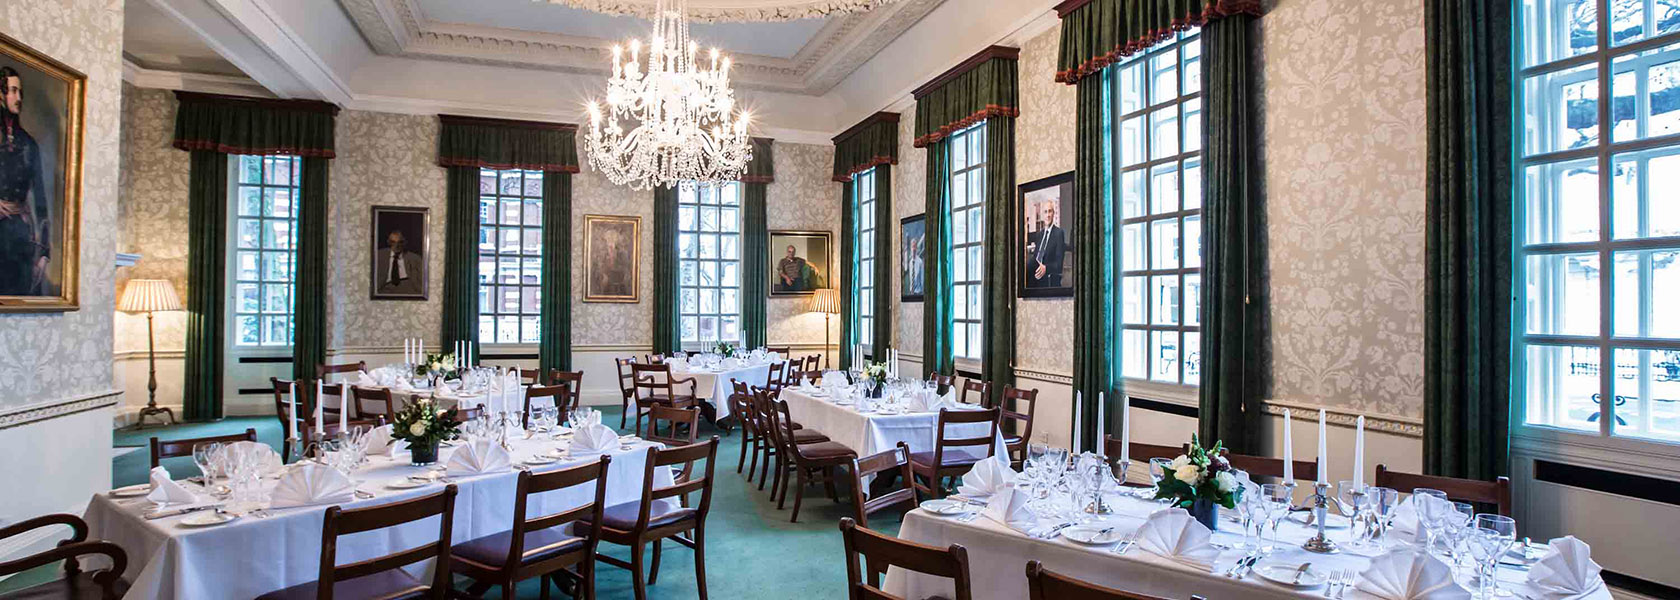 The Council Room at 170 Queen's Gate in South Kensington